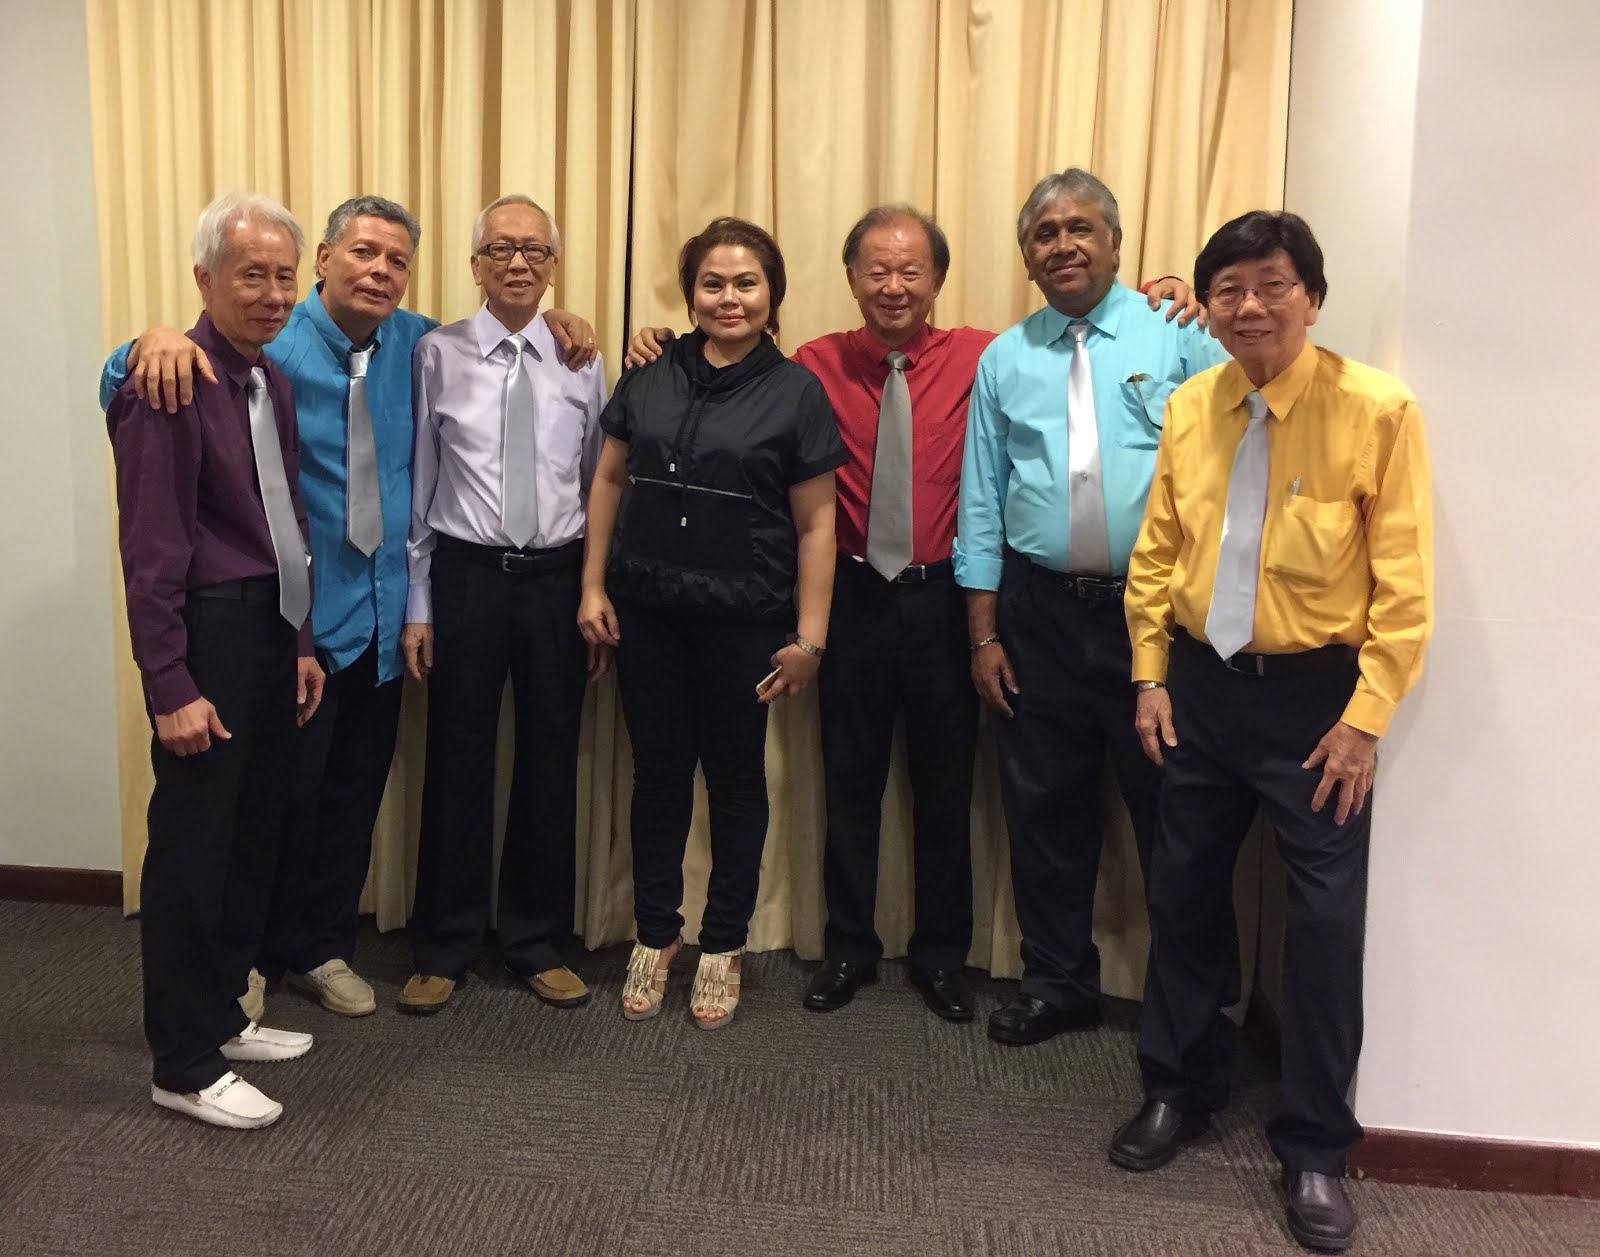 SILVER STRINGS IN CONCERT SATURDAY 7-10pm MARQUEE PASIR RIS ELIAS CC 15 SEPTEMBER 2018